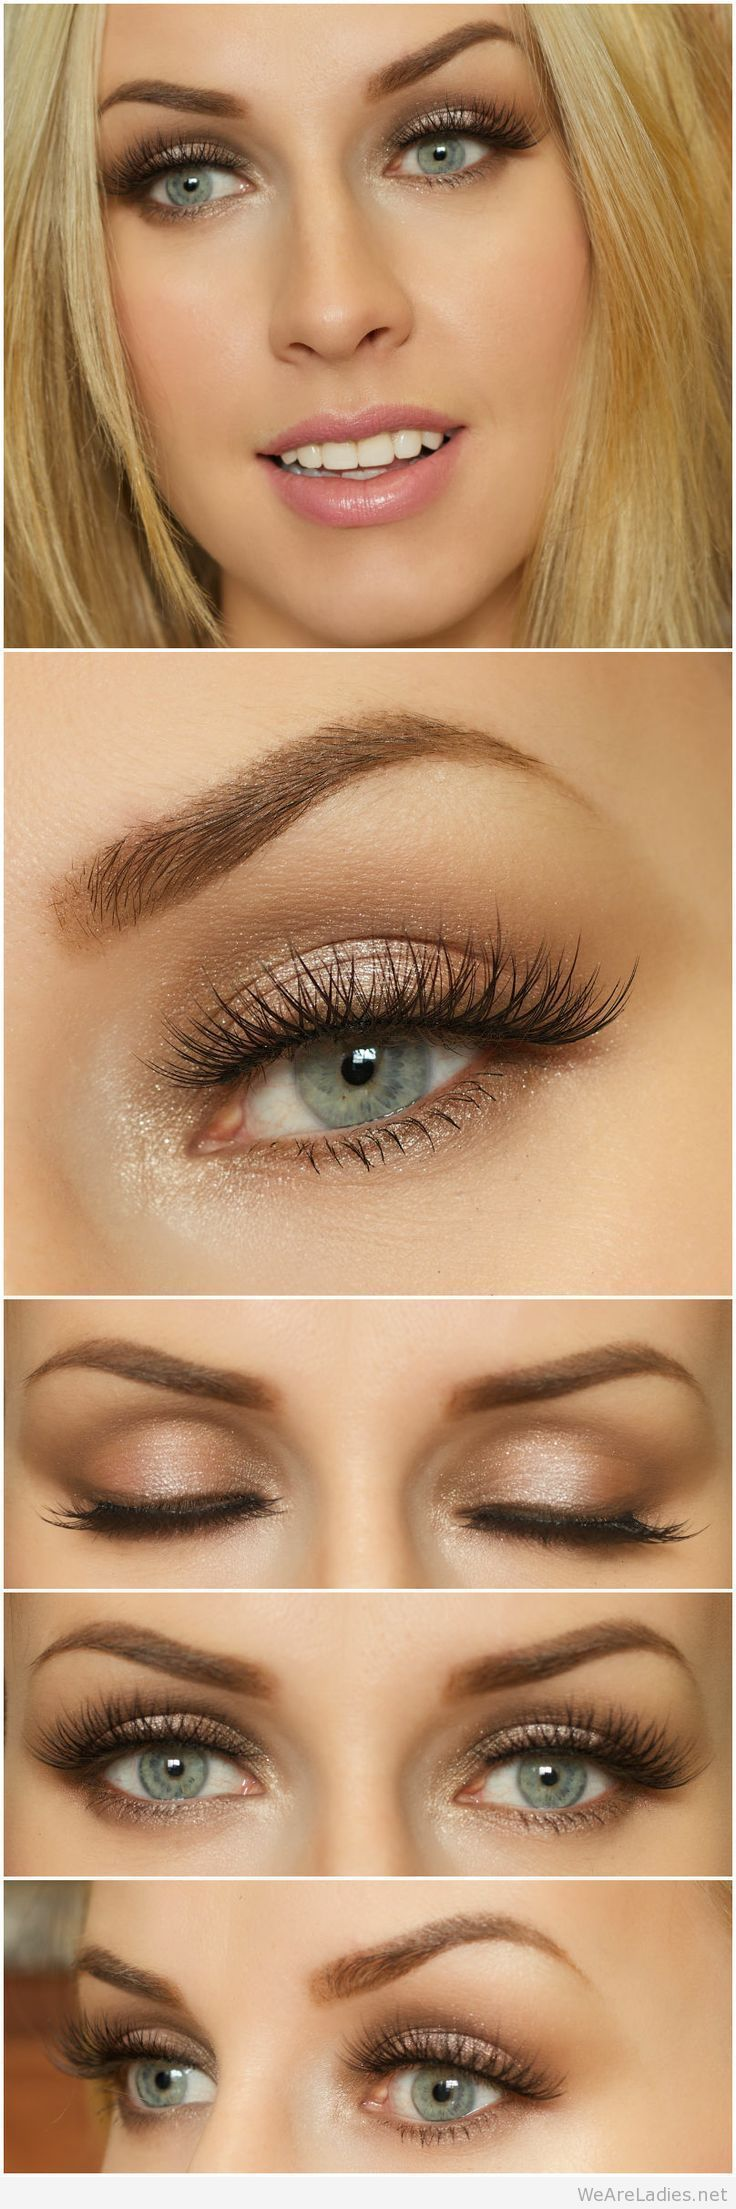 what makeup looks best with blonde hair and blue eyes